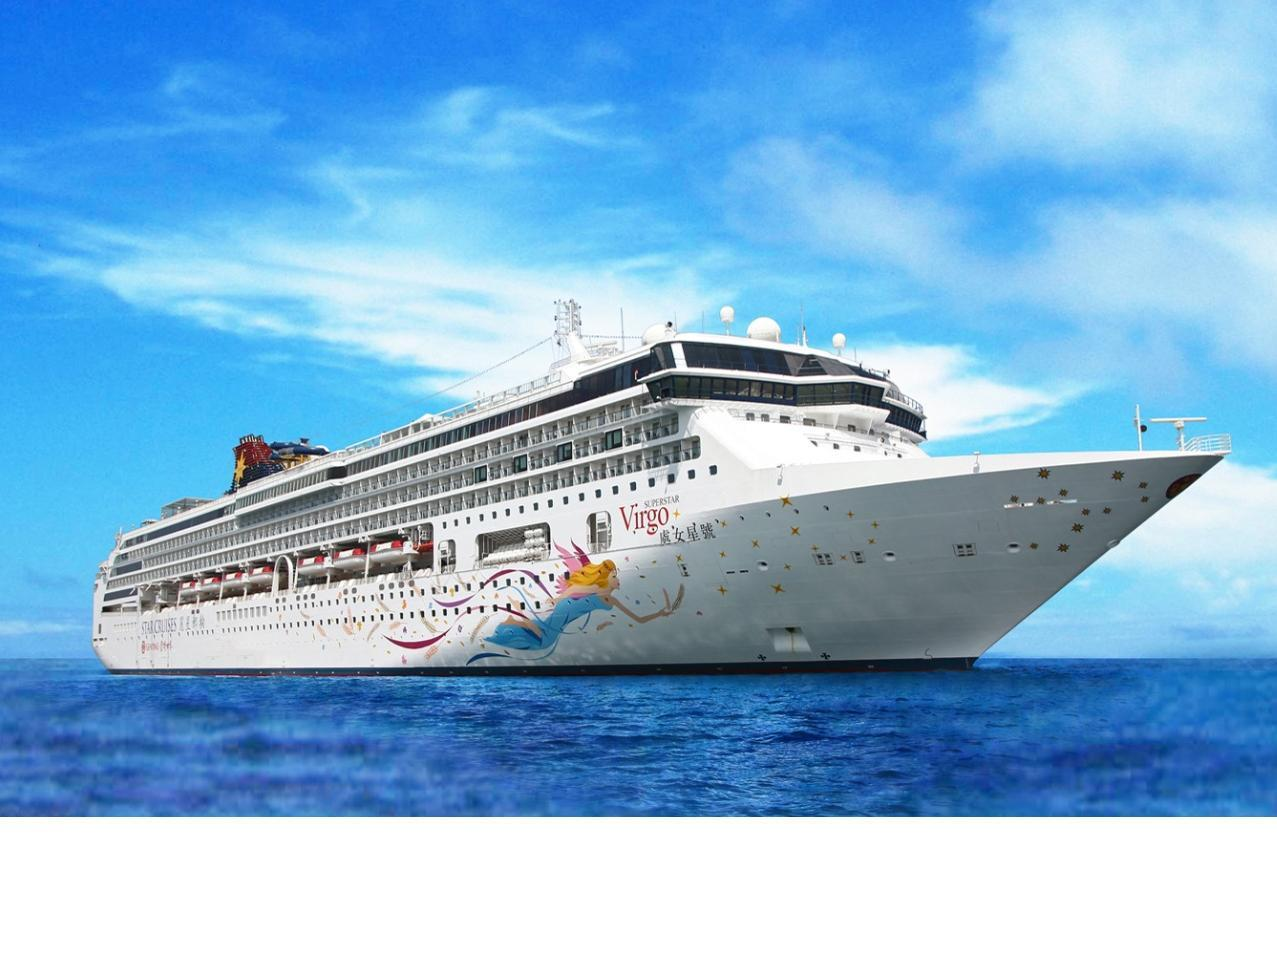 Star Cruises - SuperStar Virgo